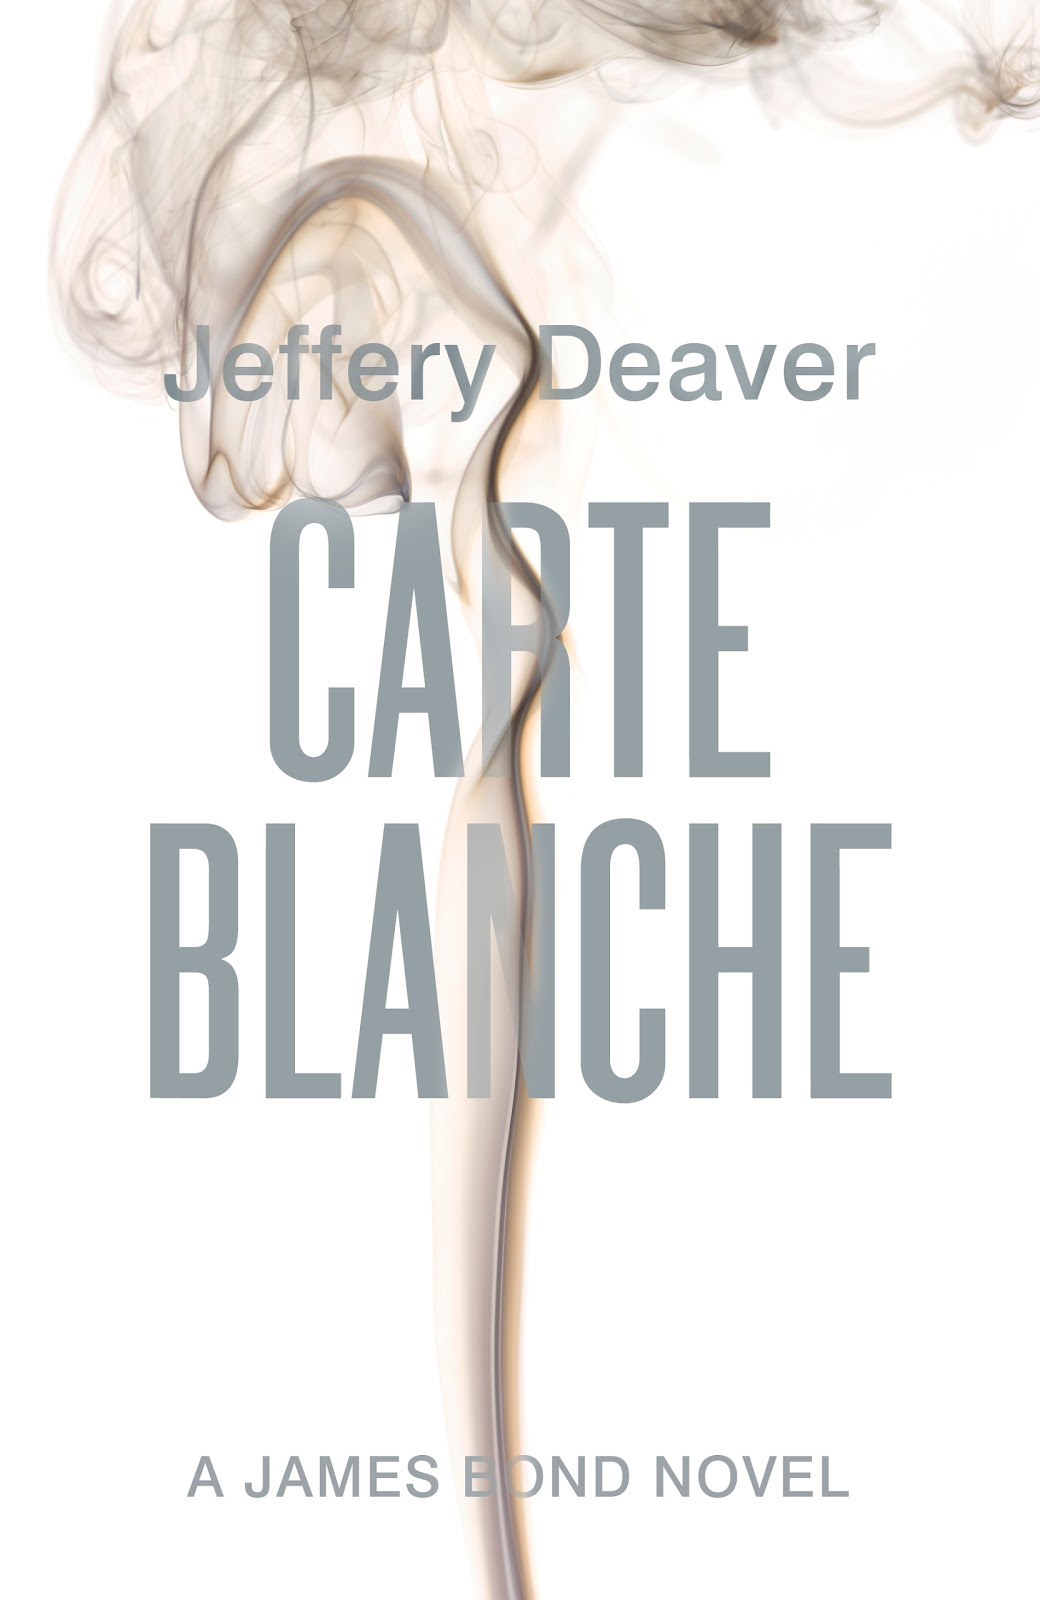 http://4.bp.blogspot.com/_OvryYdVtfSo/TTU97J7NrZI/AAAAAAAAG3U/t0X-Wd2UdwU/s1600/Carte_Blance_large_book_cover_art_Jeffrey_Deaver_James_Bond_continuation_novel.jpg